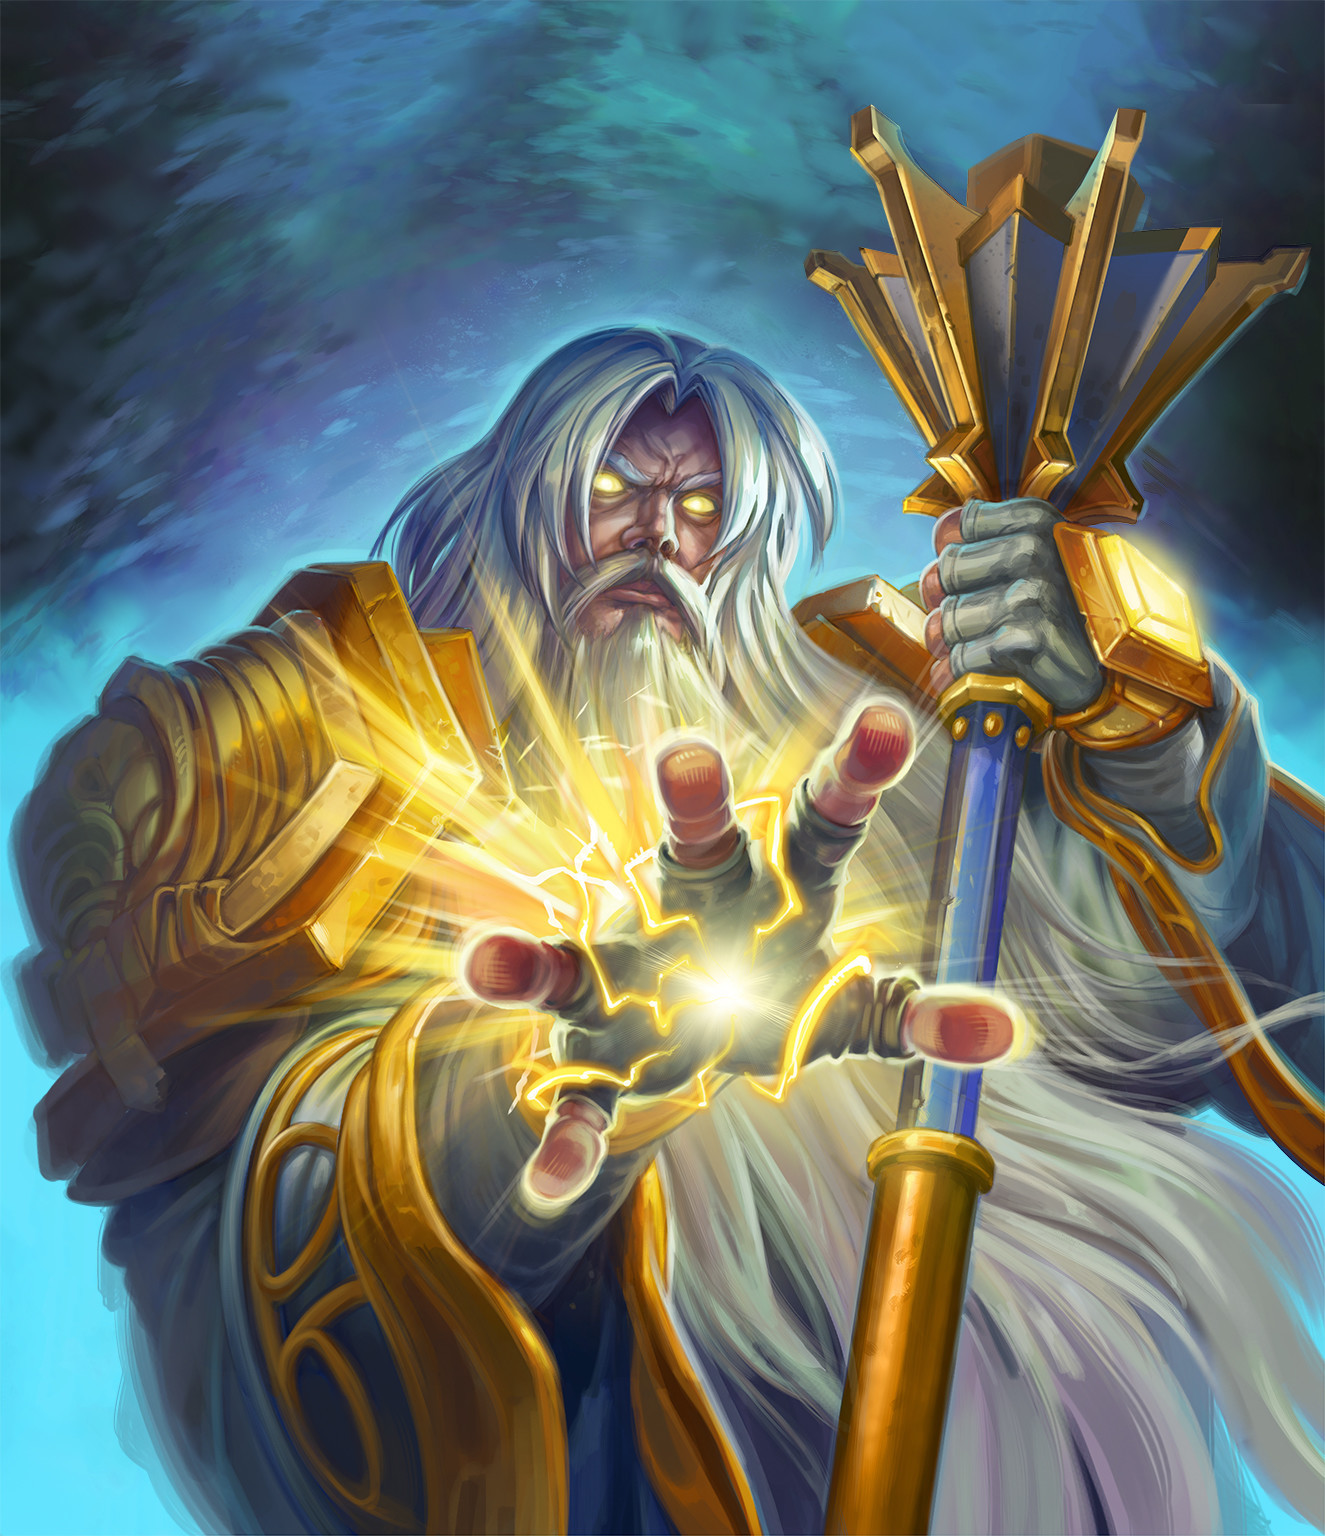 Graves the Cleric